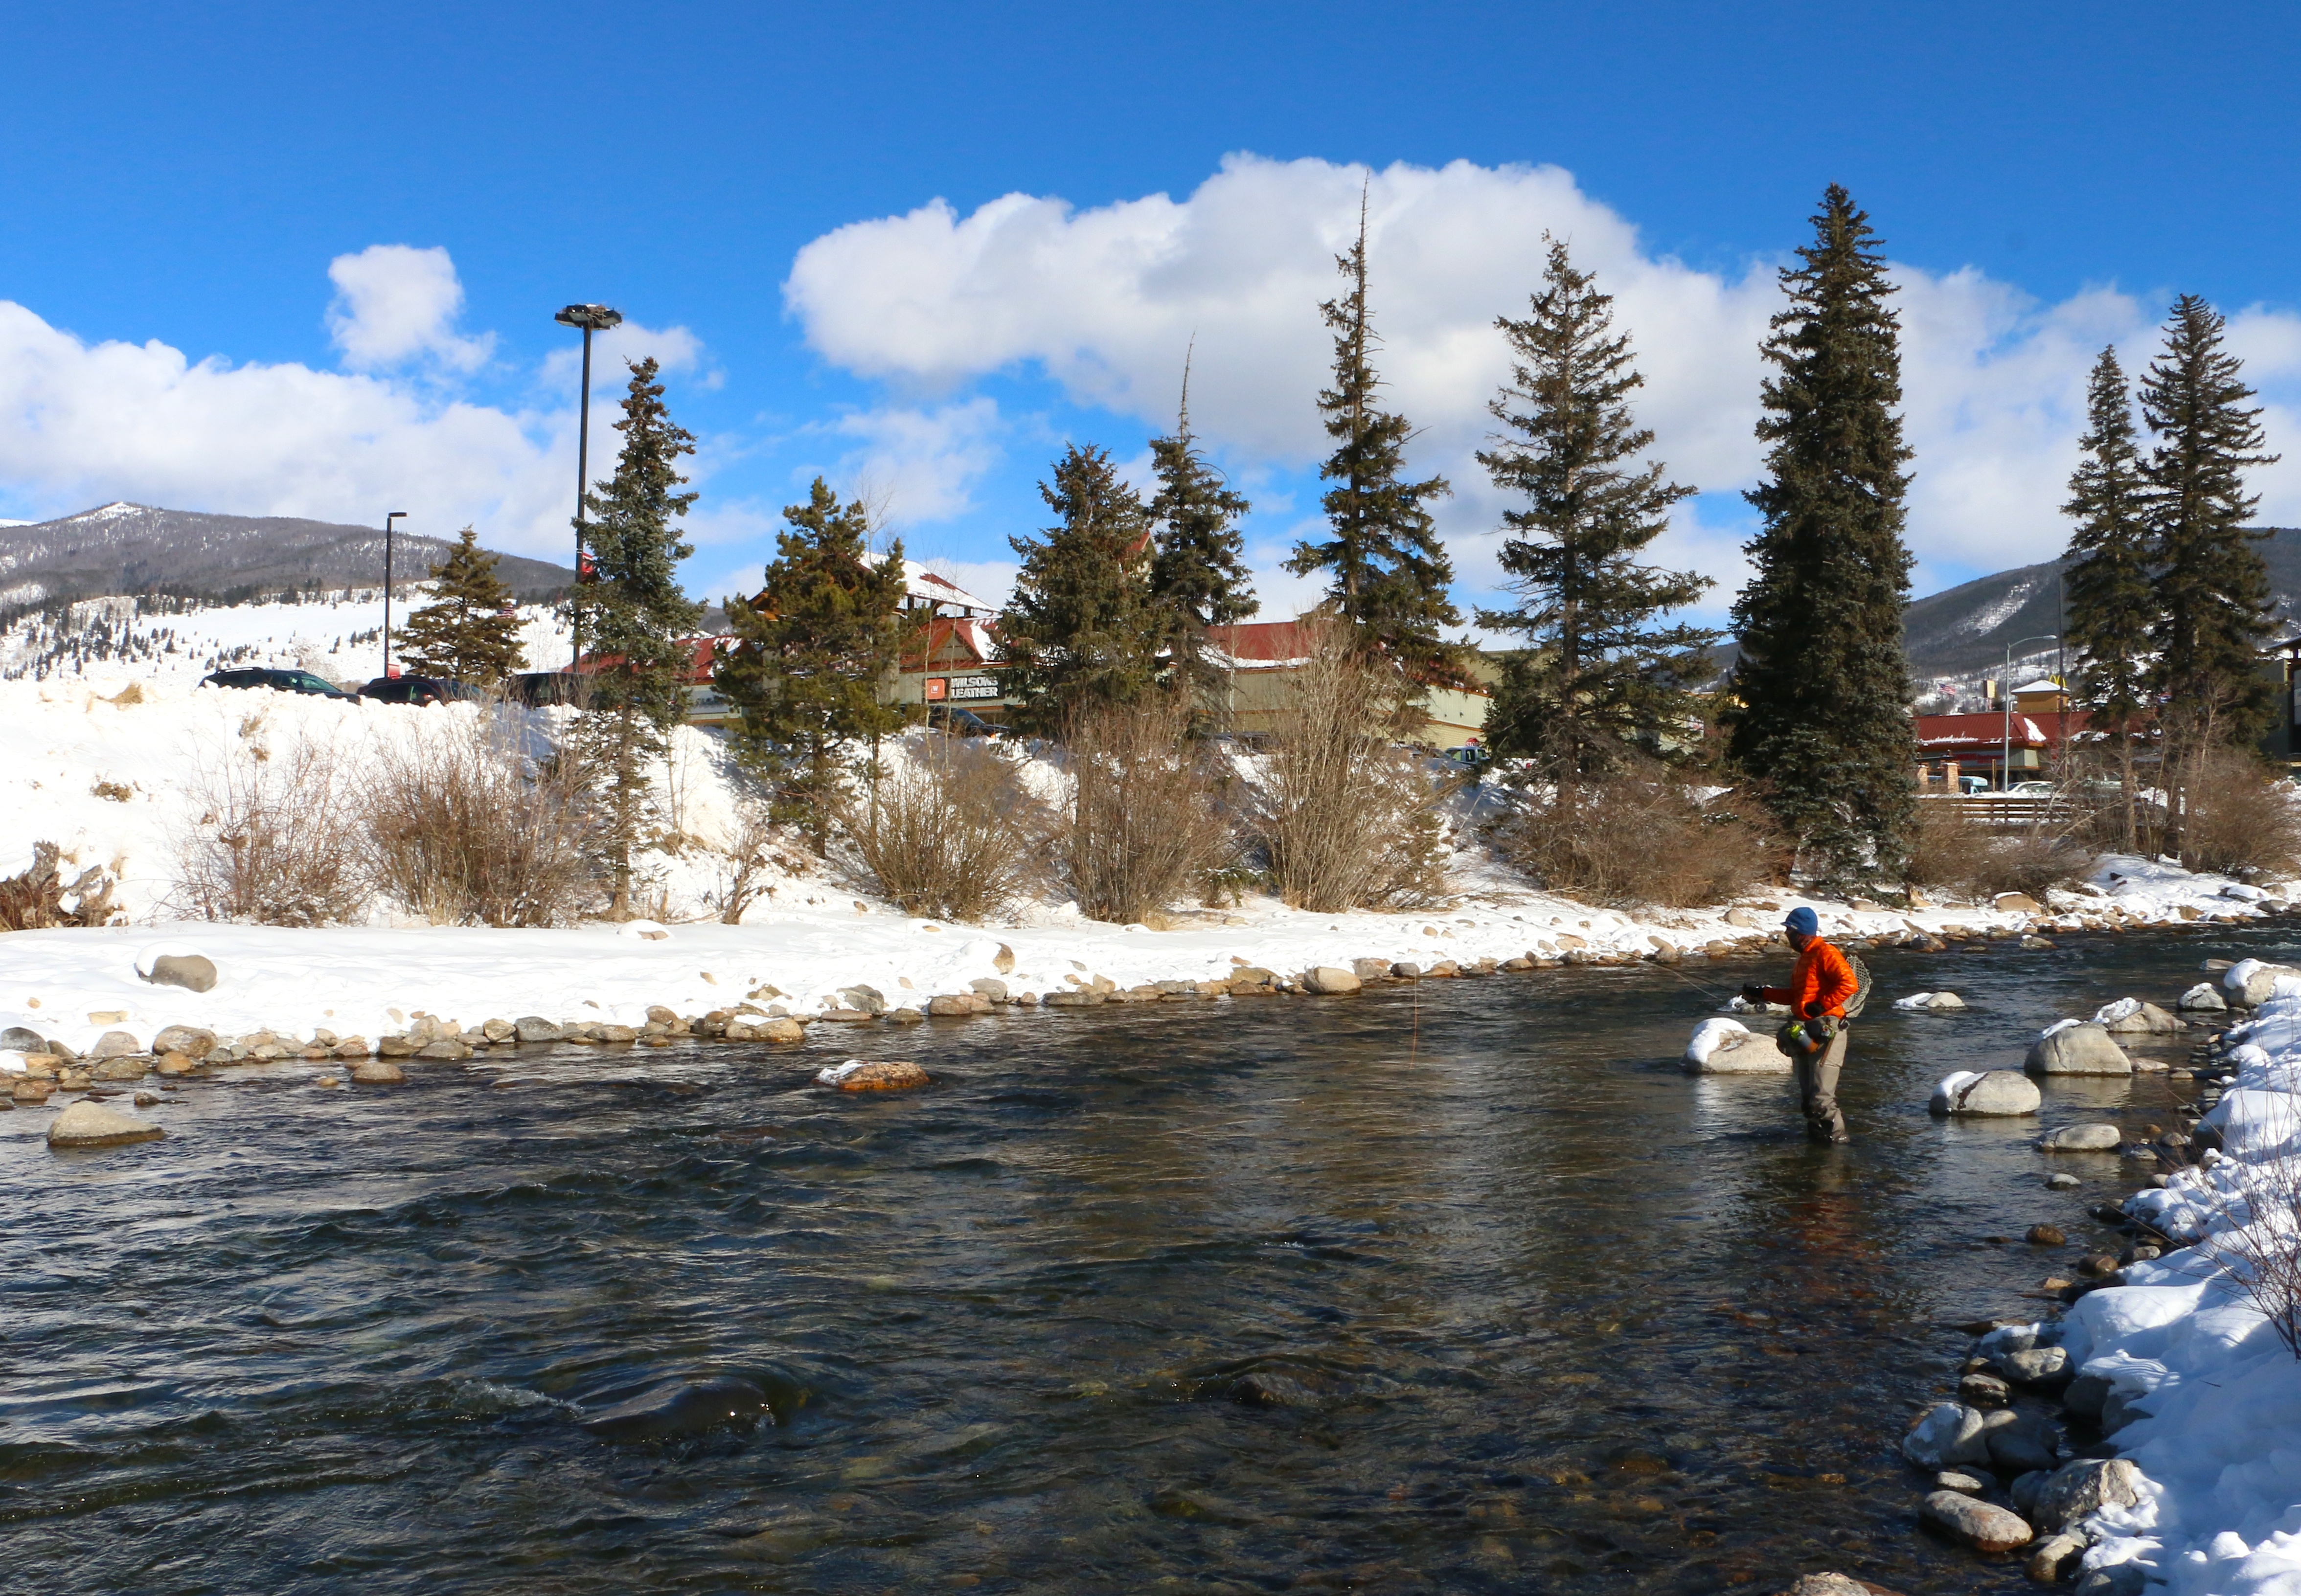 A fisherman casts his line in the blue river on a Colorado winter day.